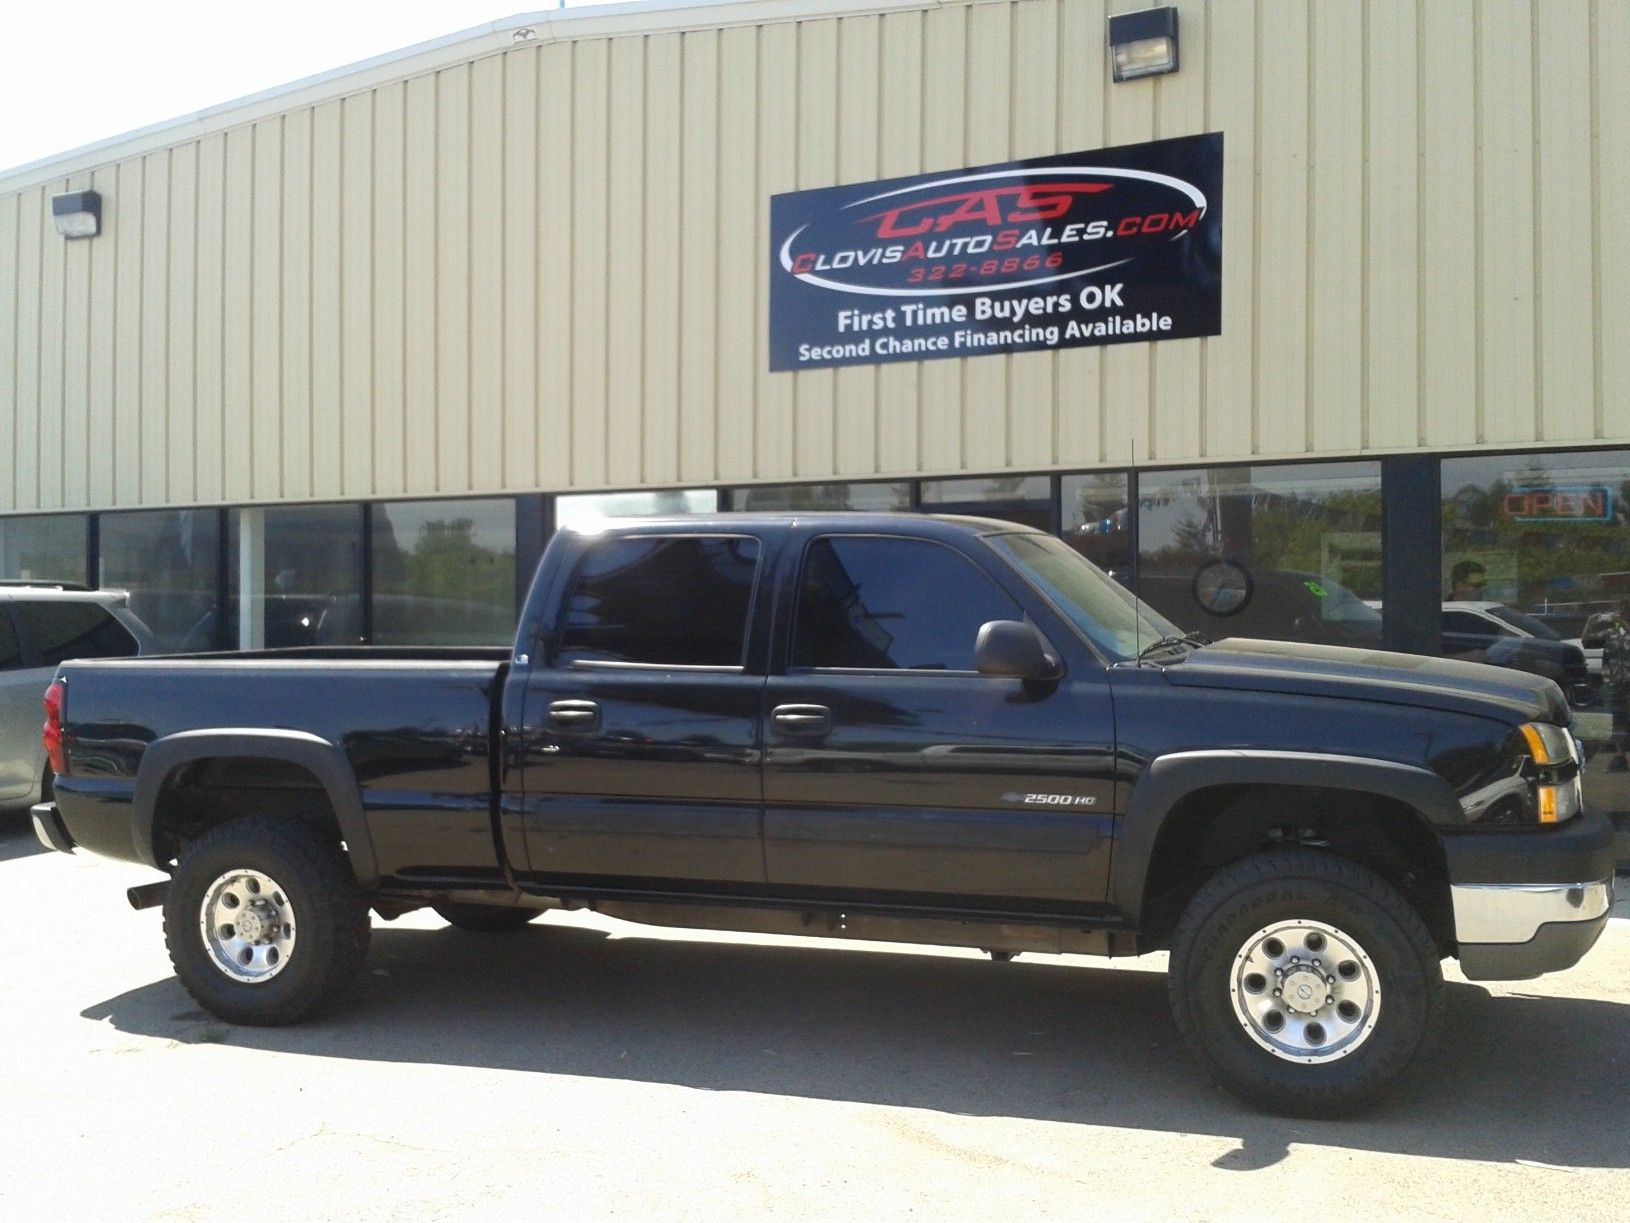 hight resolution of  16 995 2005 chevy silverado 2500hd 4x4 touch screen cd player auxilary hook up 4 inch